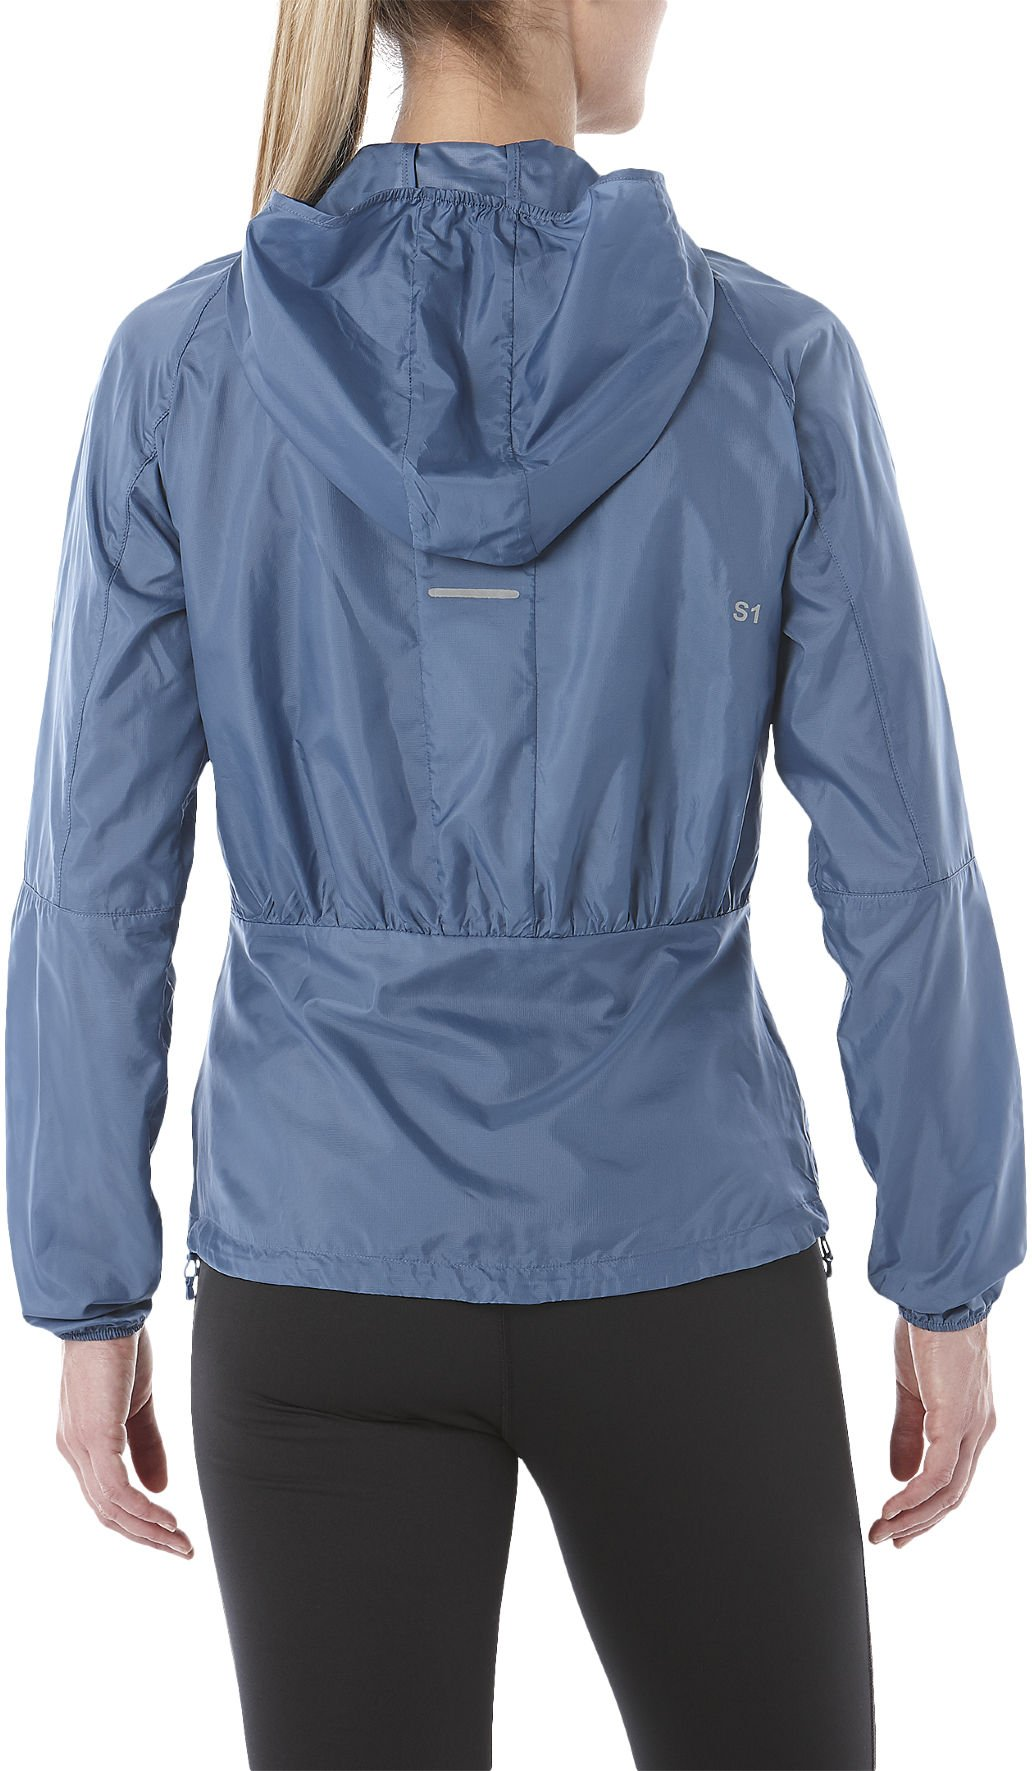 construir impresión Aleta  Hooded jacket Asics ASICS PACKABLE JACKET - Top4Running.com